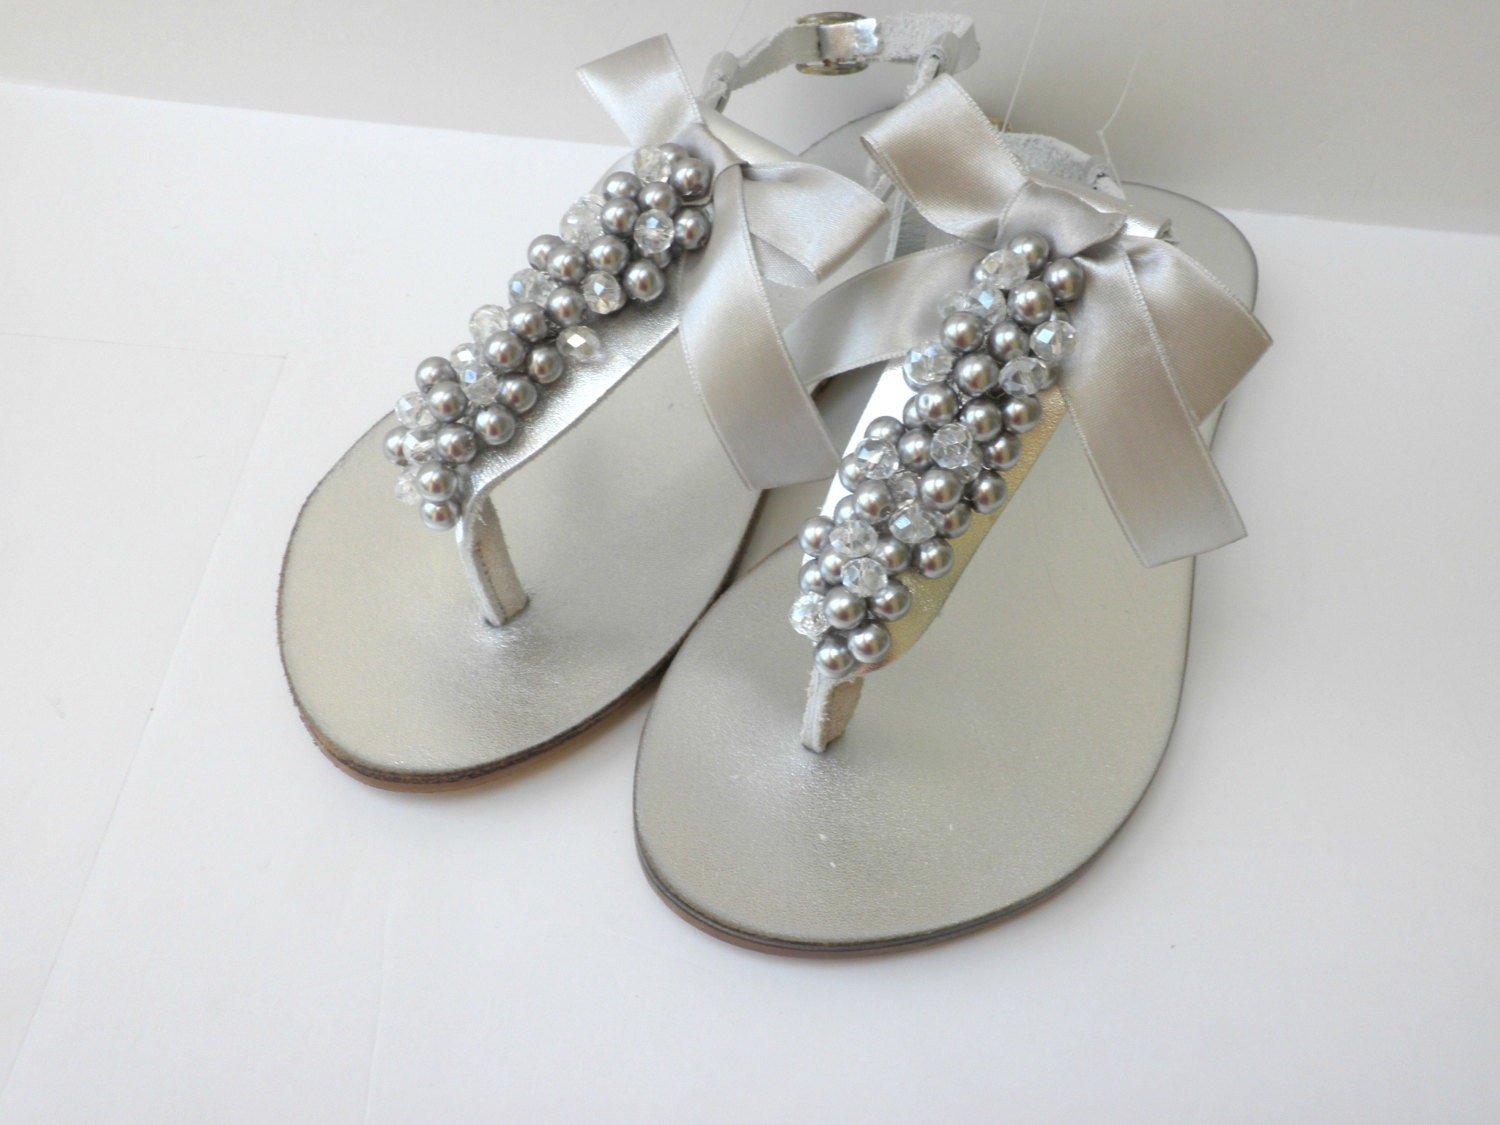 Silver Wedding Sandals Bridal Pealrs Crystal Beads